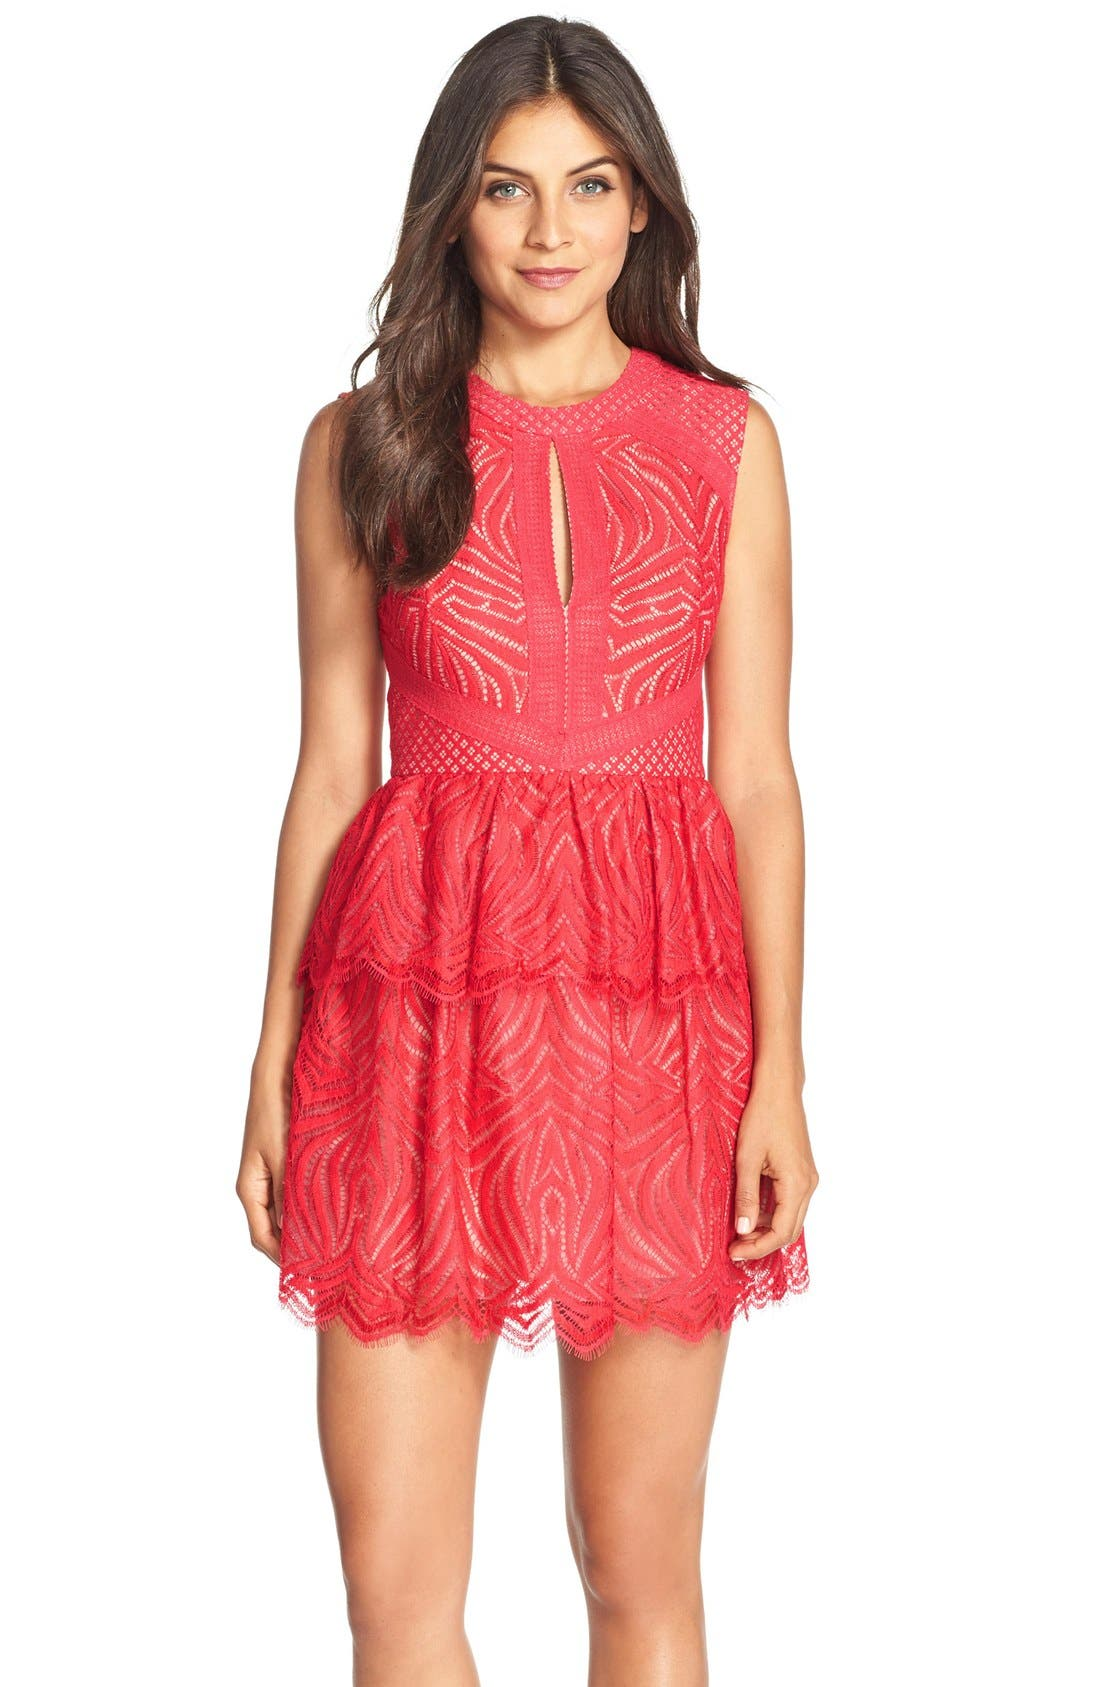 Main Image - BCBGMAXAZRIA 'Micaila' Tiered Skirt Lace Fit & Flare Dress